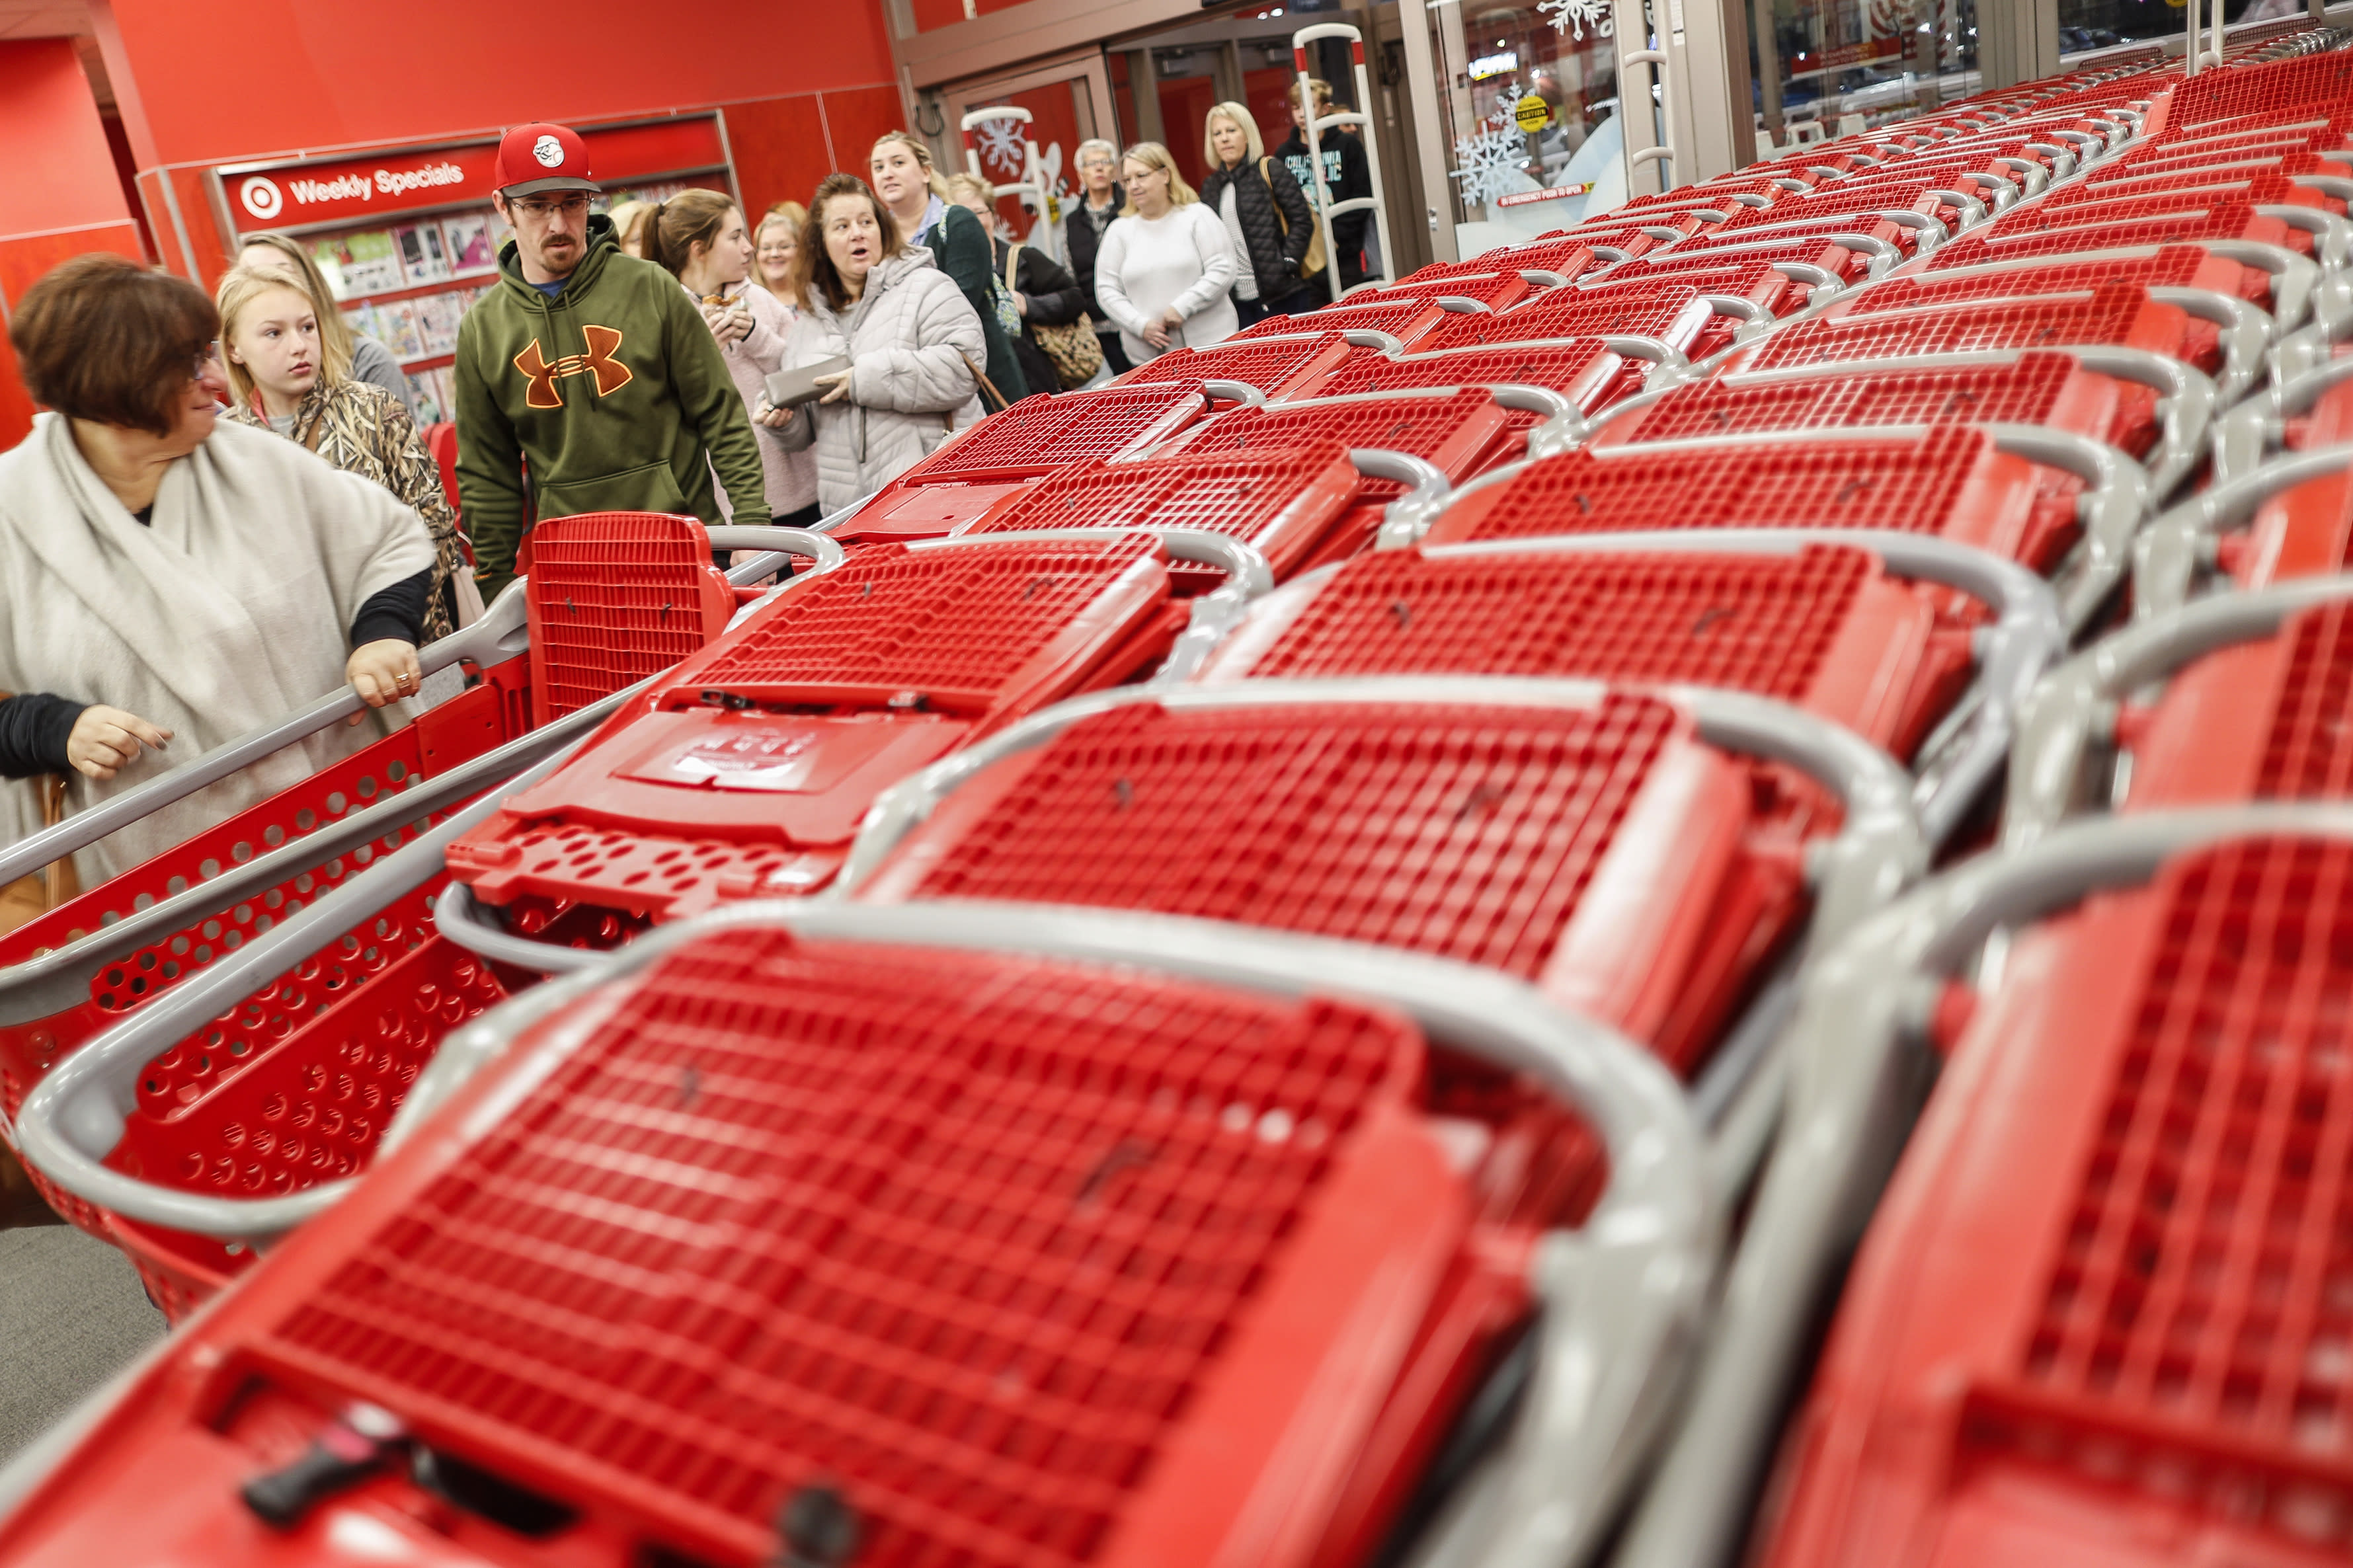 Target 'needs to do a little more work on the food side': analyst